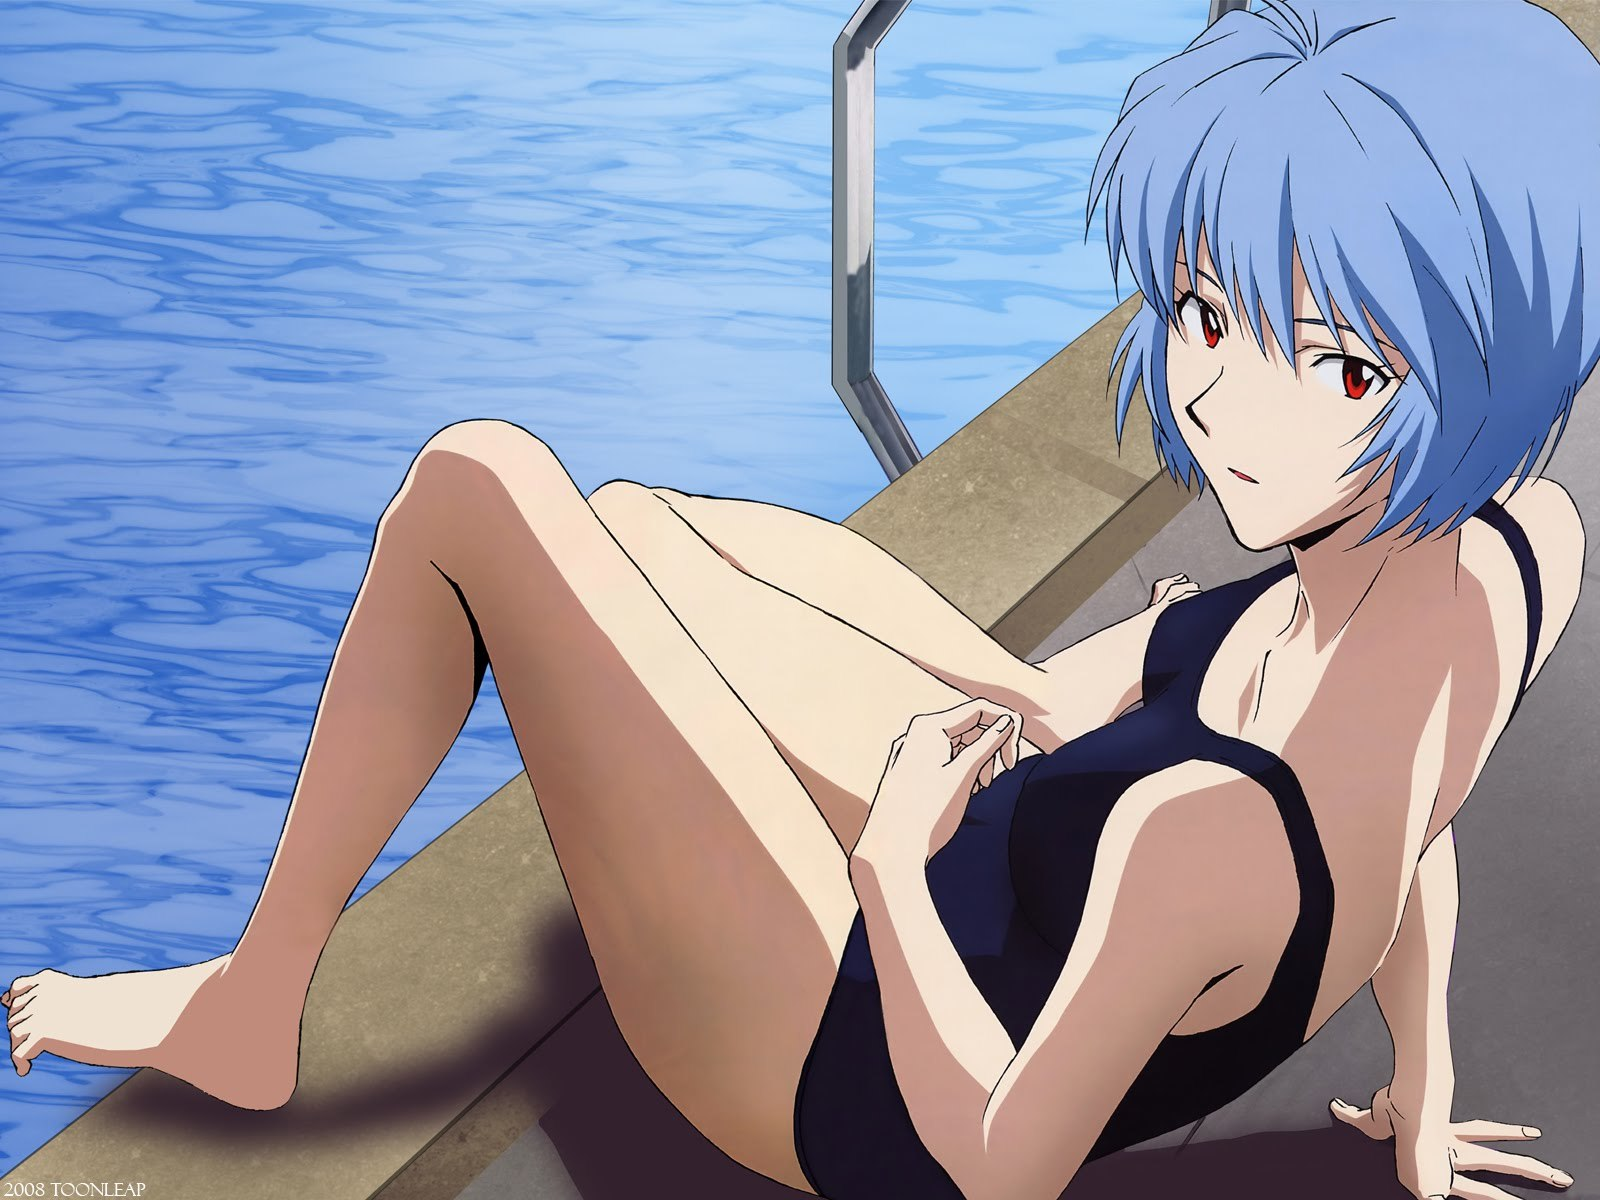 Anime Ayanami rei neon HD Wallpaper